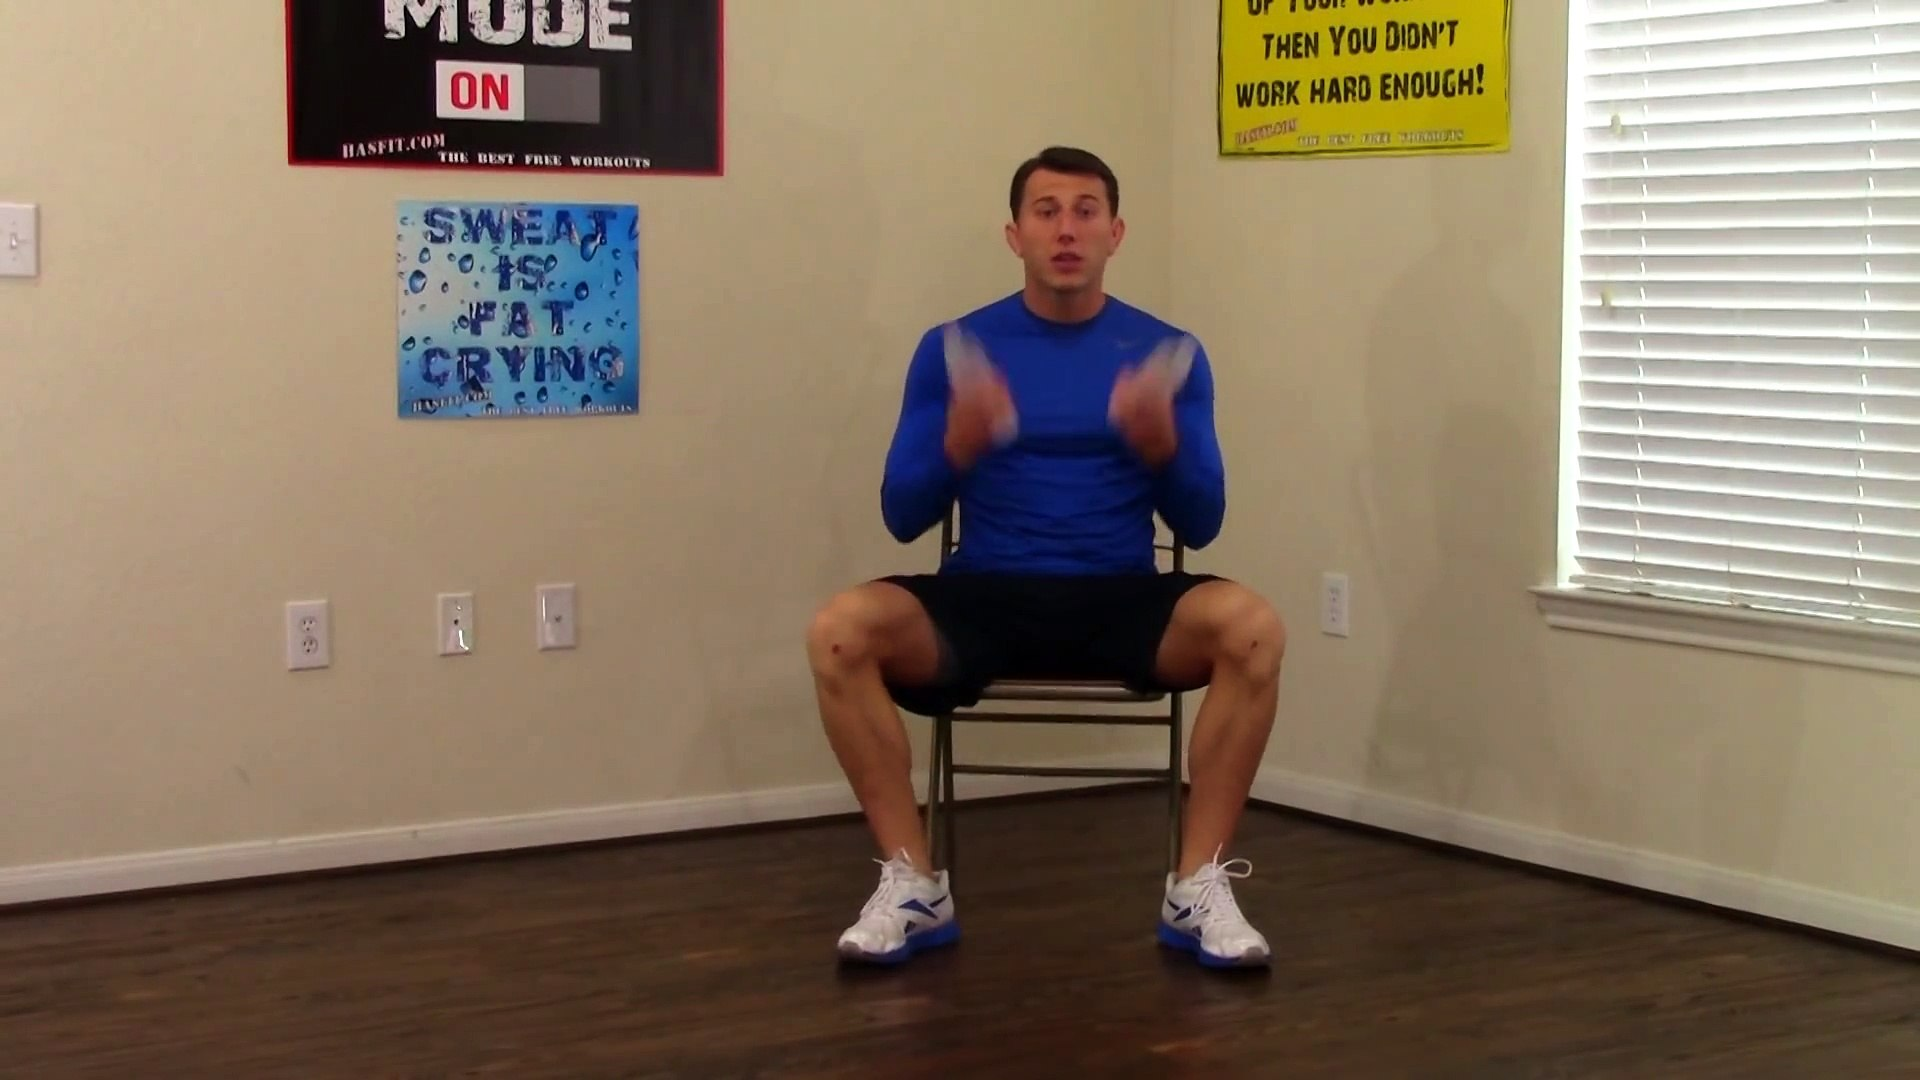 10 Min Chair Workout for Seniors - HASfit Seated Exercise for Seniors -  Chair Exercises for Elderly